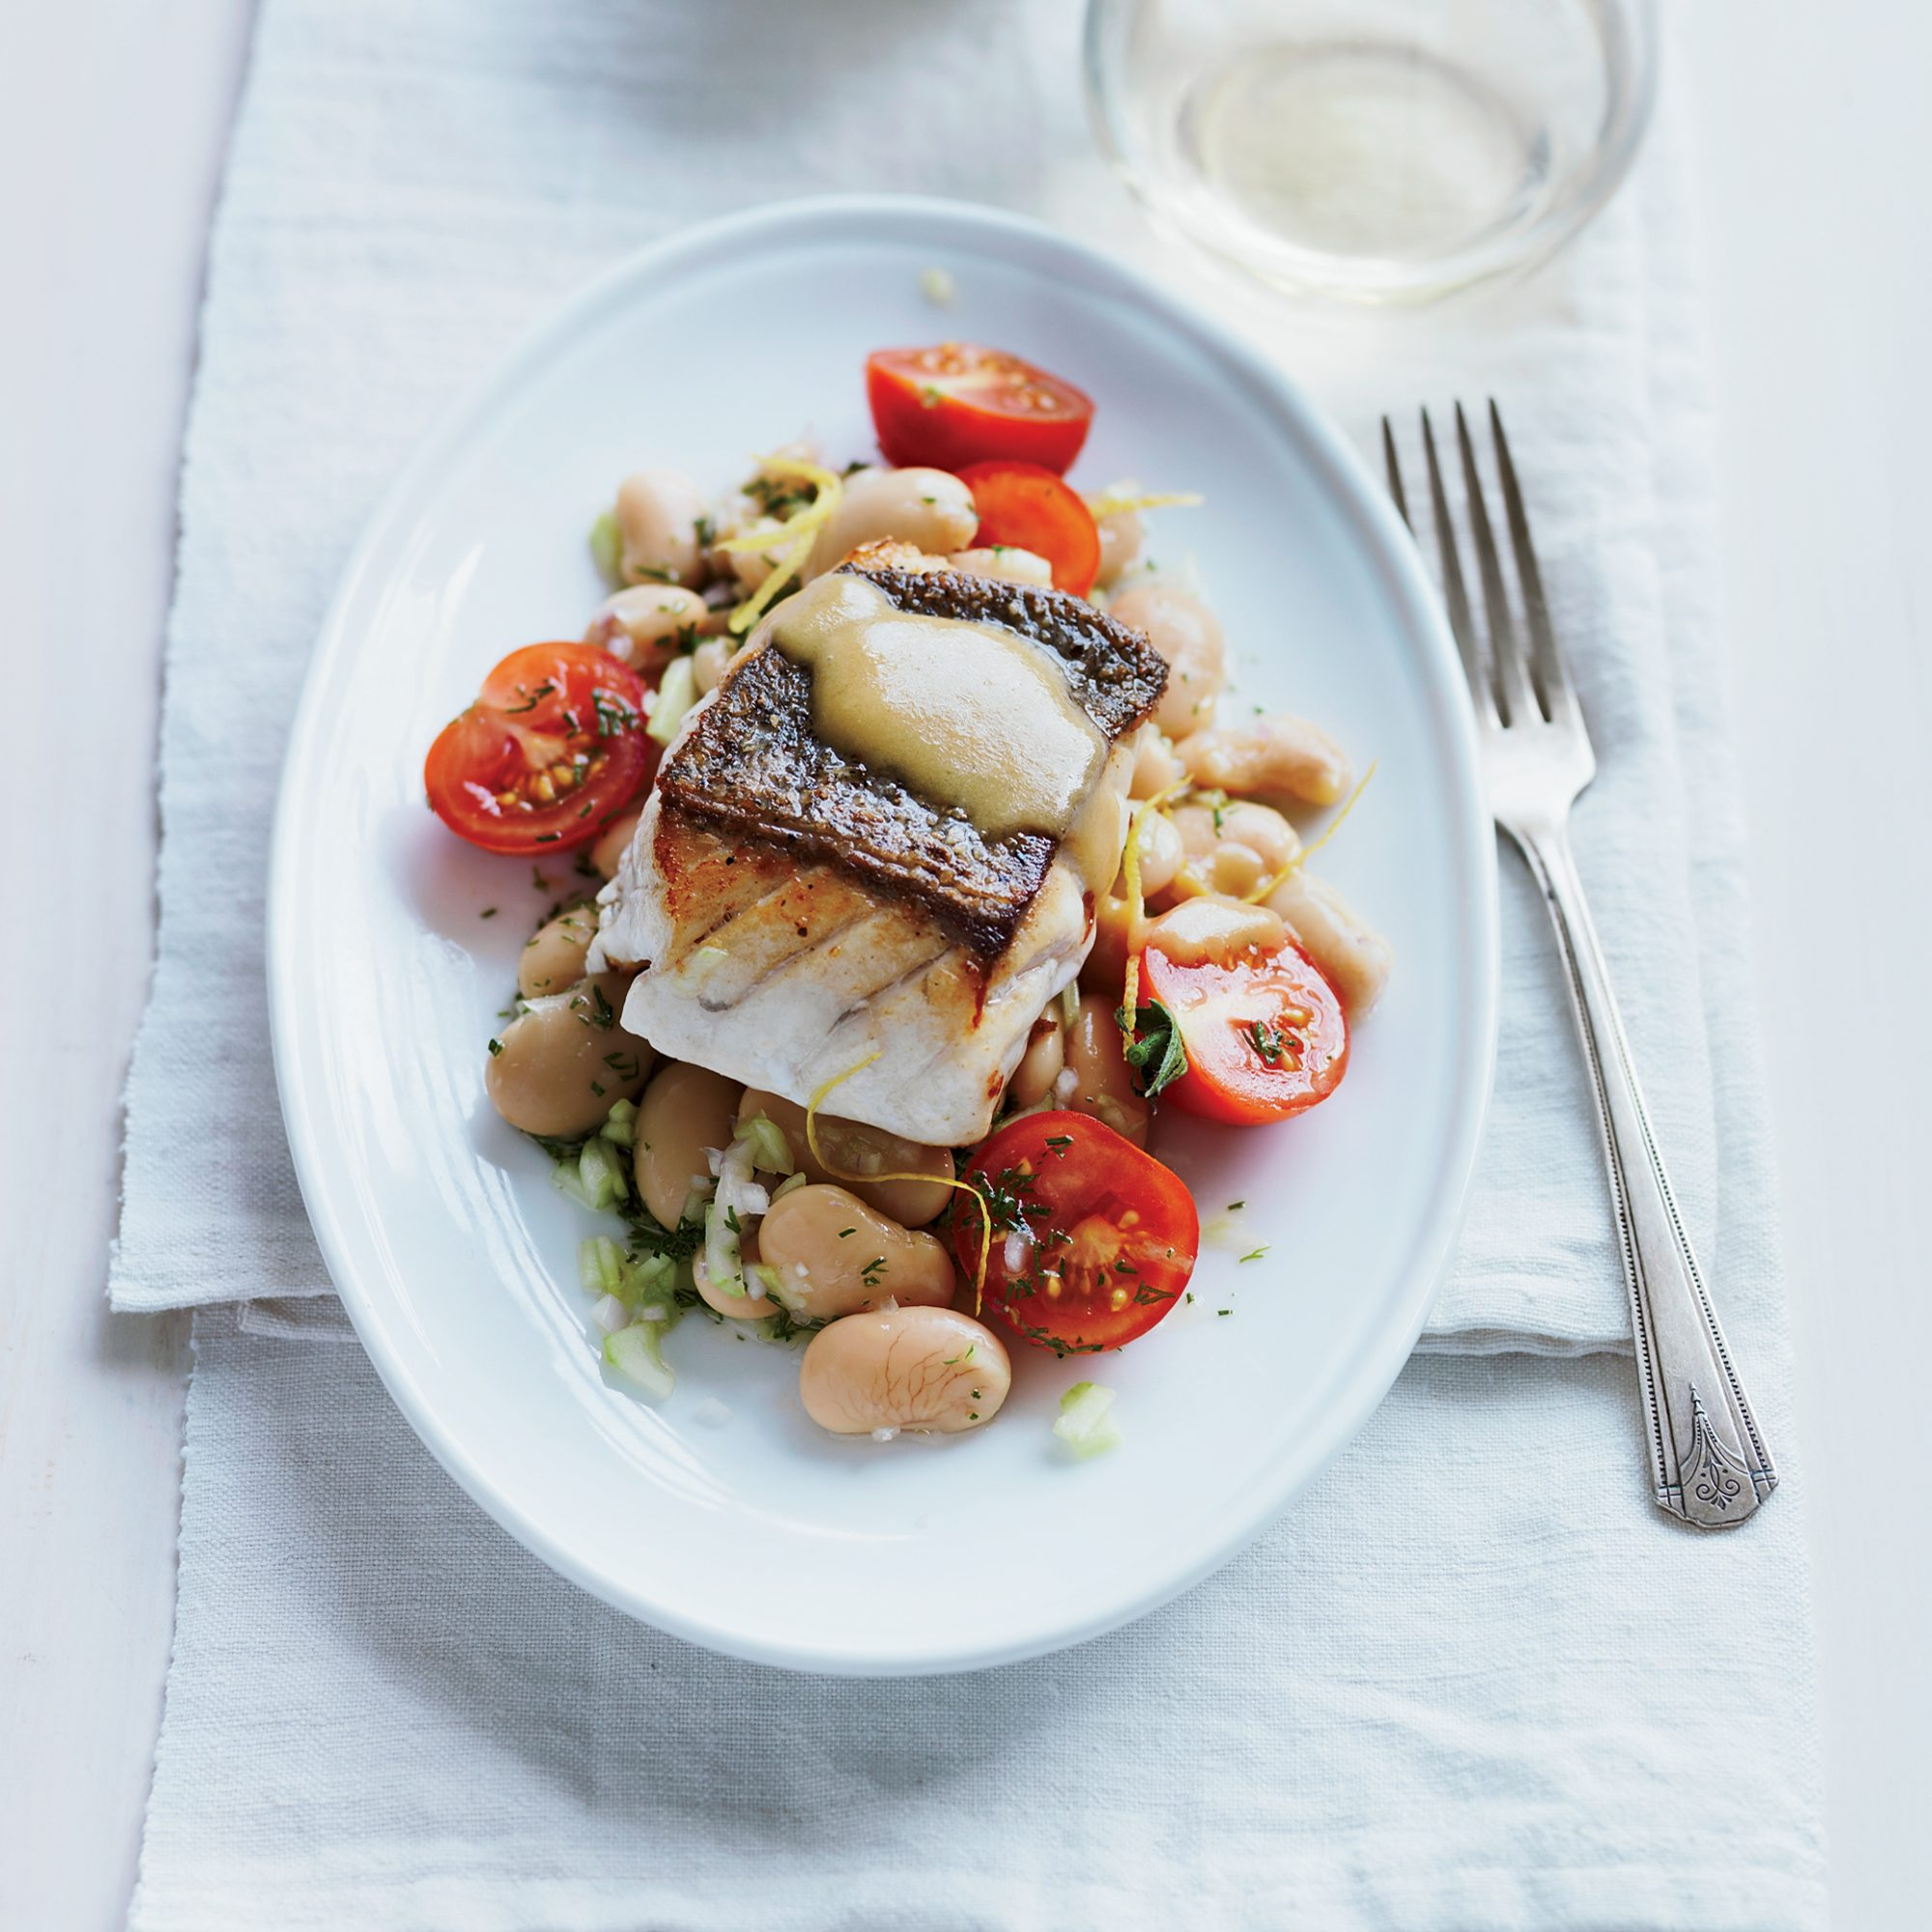 Pan-Roasted Grouper with Tomato and Butter Bean Salad